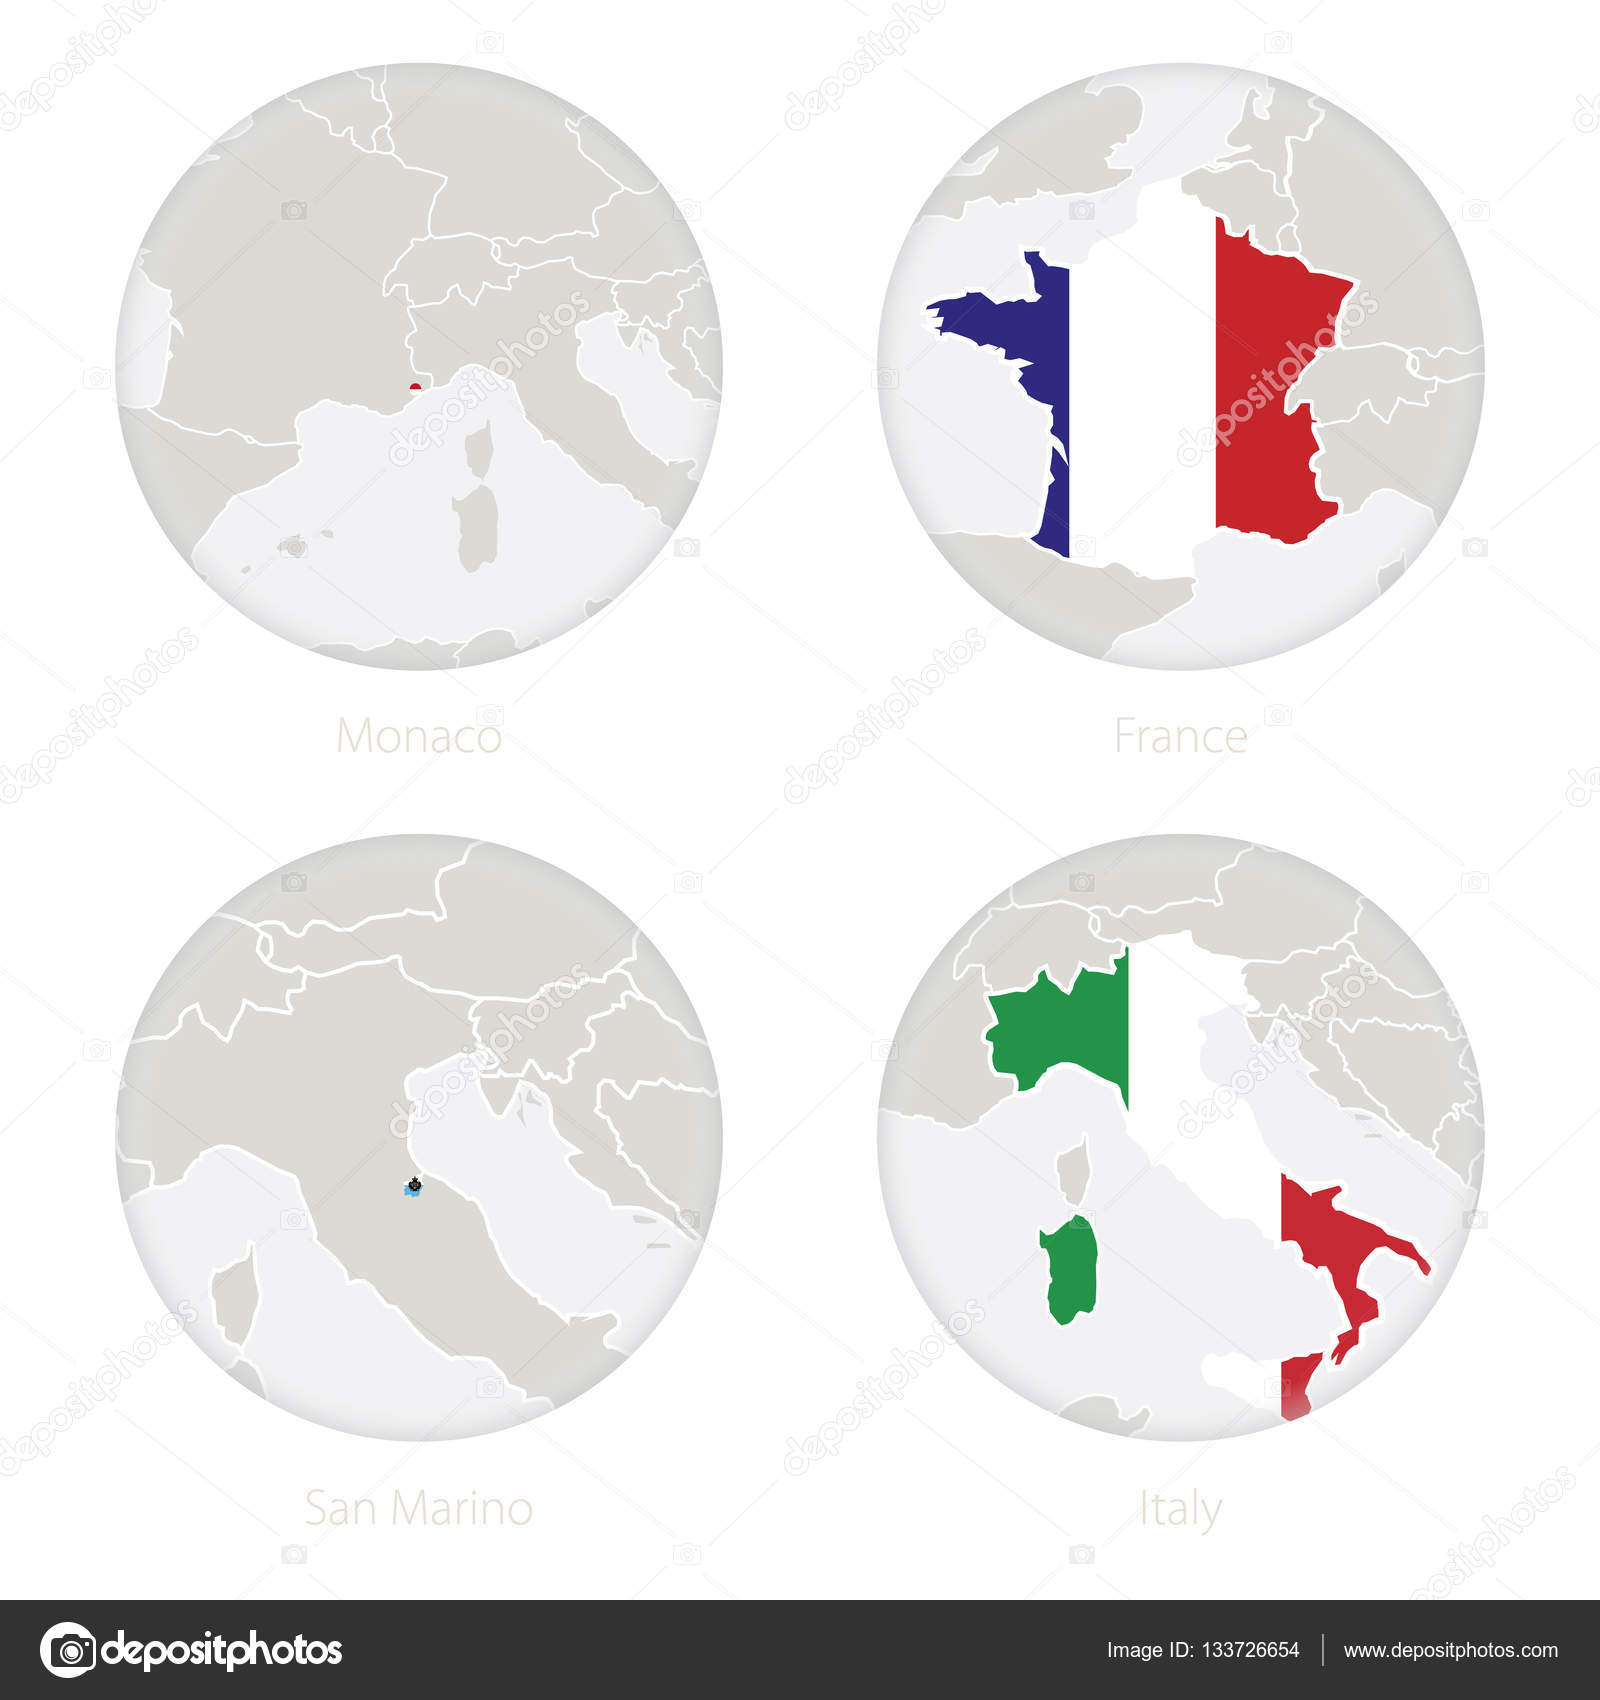 Monaco France San Marino Italy Map Contour And National Flag In A